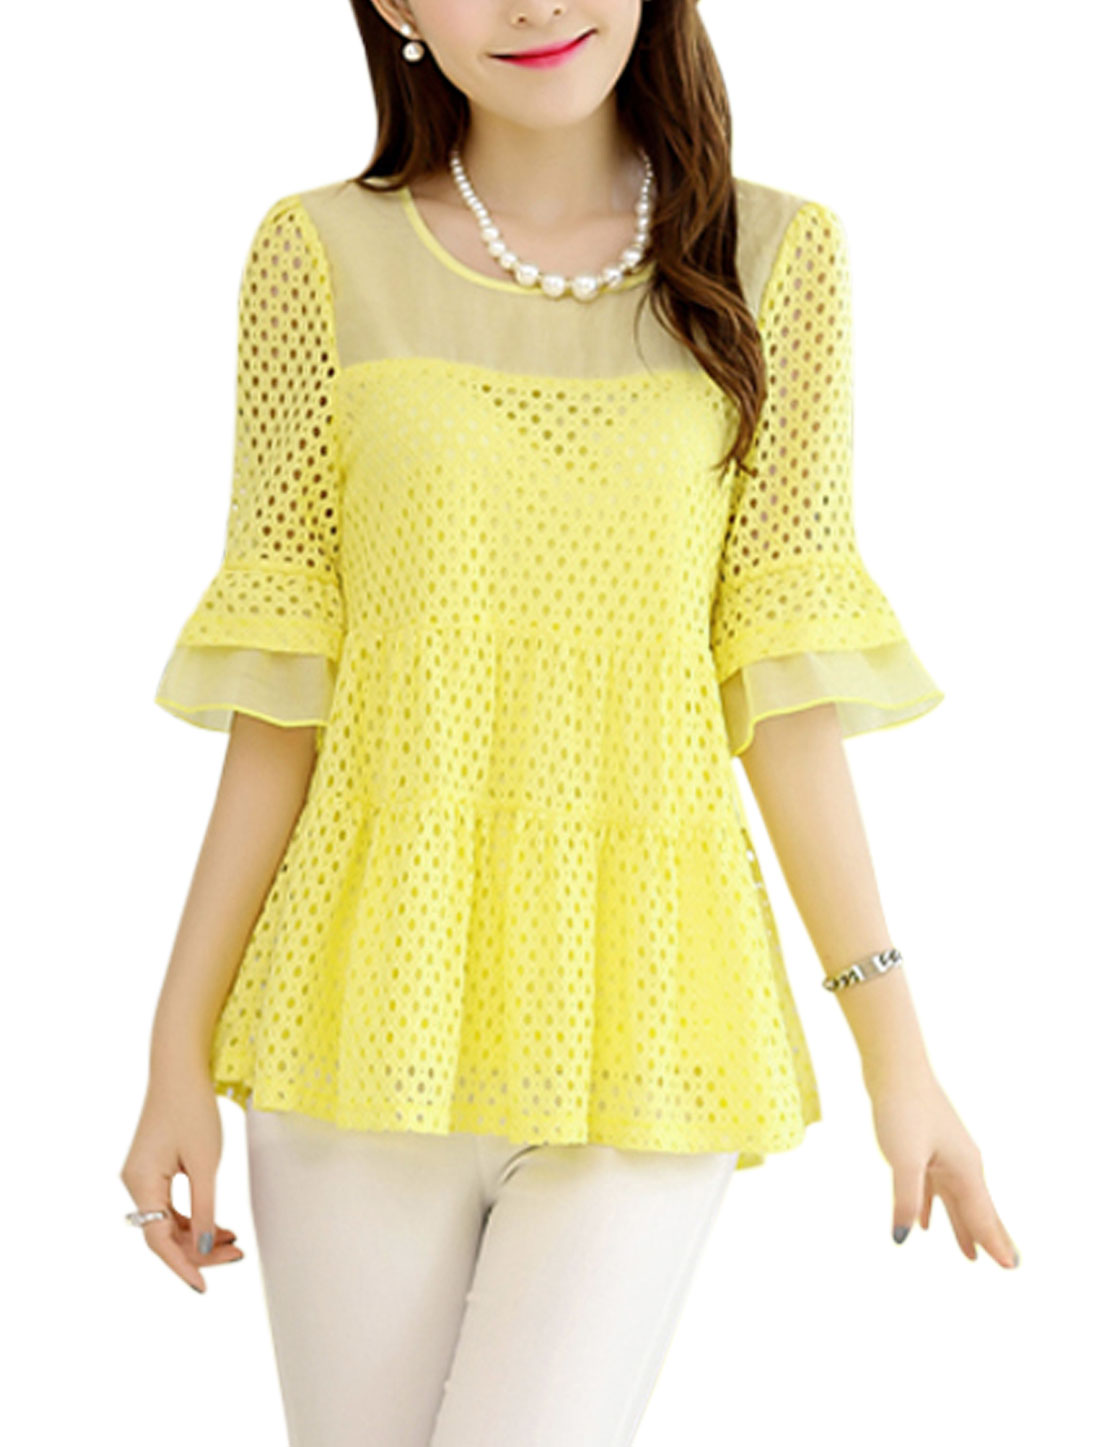 Ladies Round Neck Hollow Out Panel Blouses Tops Light Yellow M